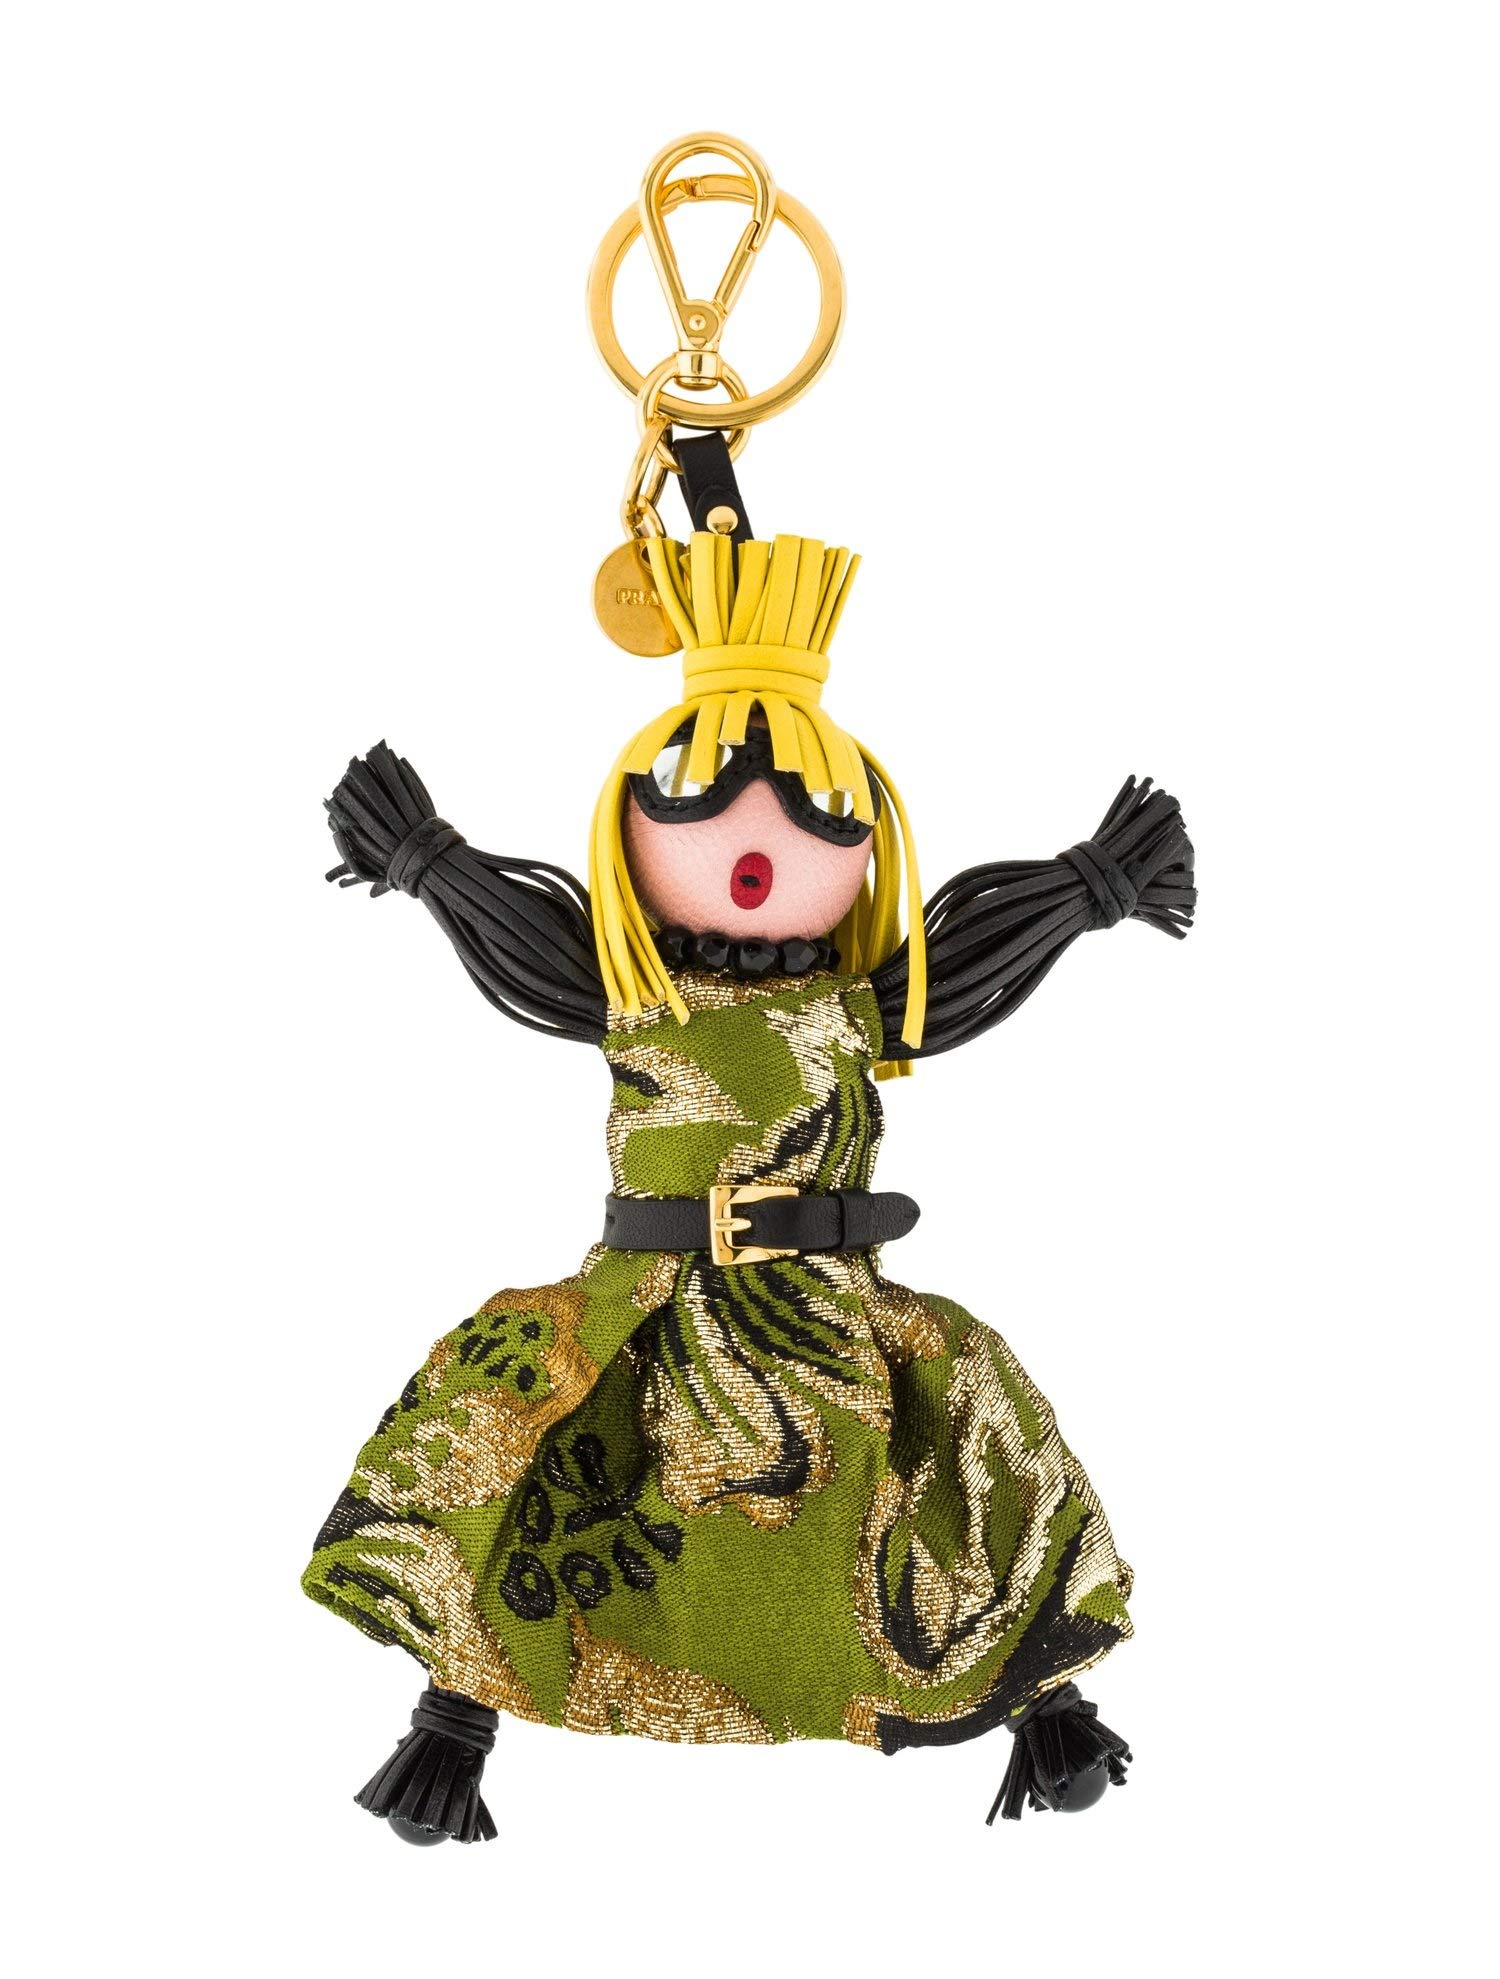 Prada Trick Pelle Felce Green Dress Jasmine Doll Keyring 1TL171 by Prada (Image #1)